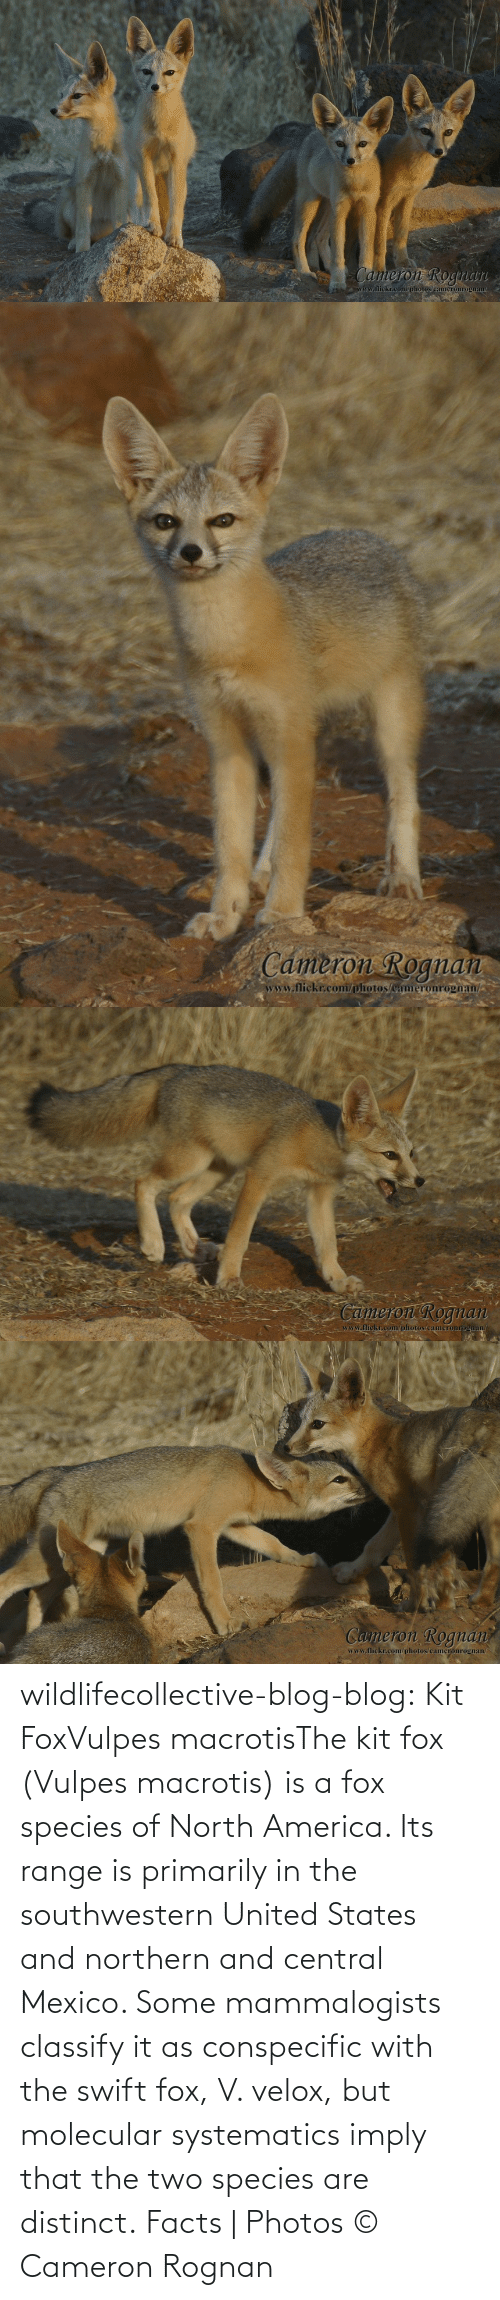 states: wildlifecollective-blog-blog:  Kit FoxVulpes macrotisThe kit fox (Vulpes macrotis) is a fox species of North America. Its range is primarily in the southwestern United States and northern and central Mexico. Some mammalogists classify it as conspecific with the swift fox, V. velox, but molecular systematics imply that the two species are distinct. Facts | Photos © Cameron Rognan